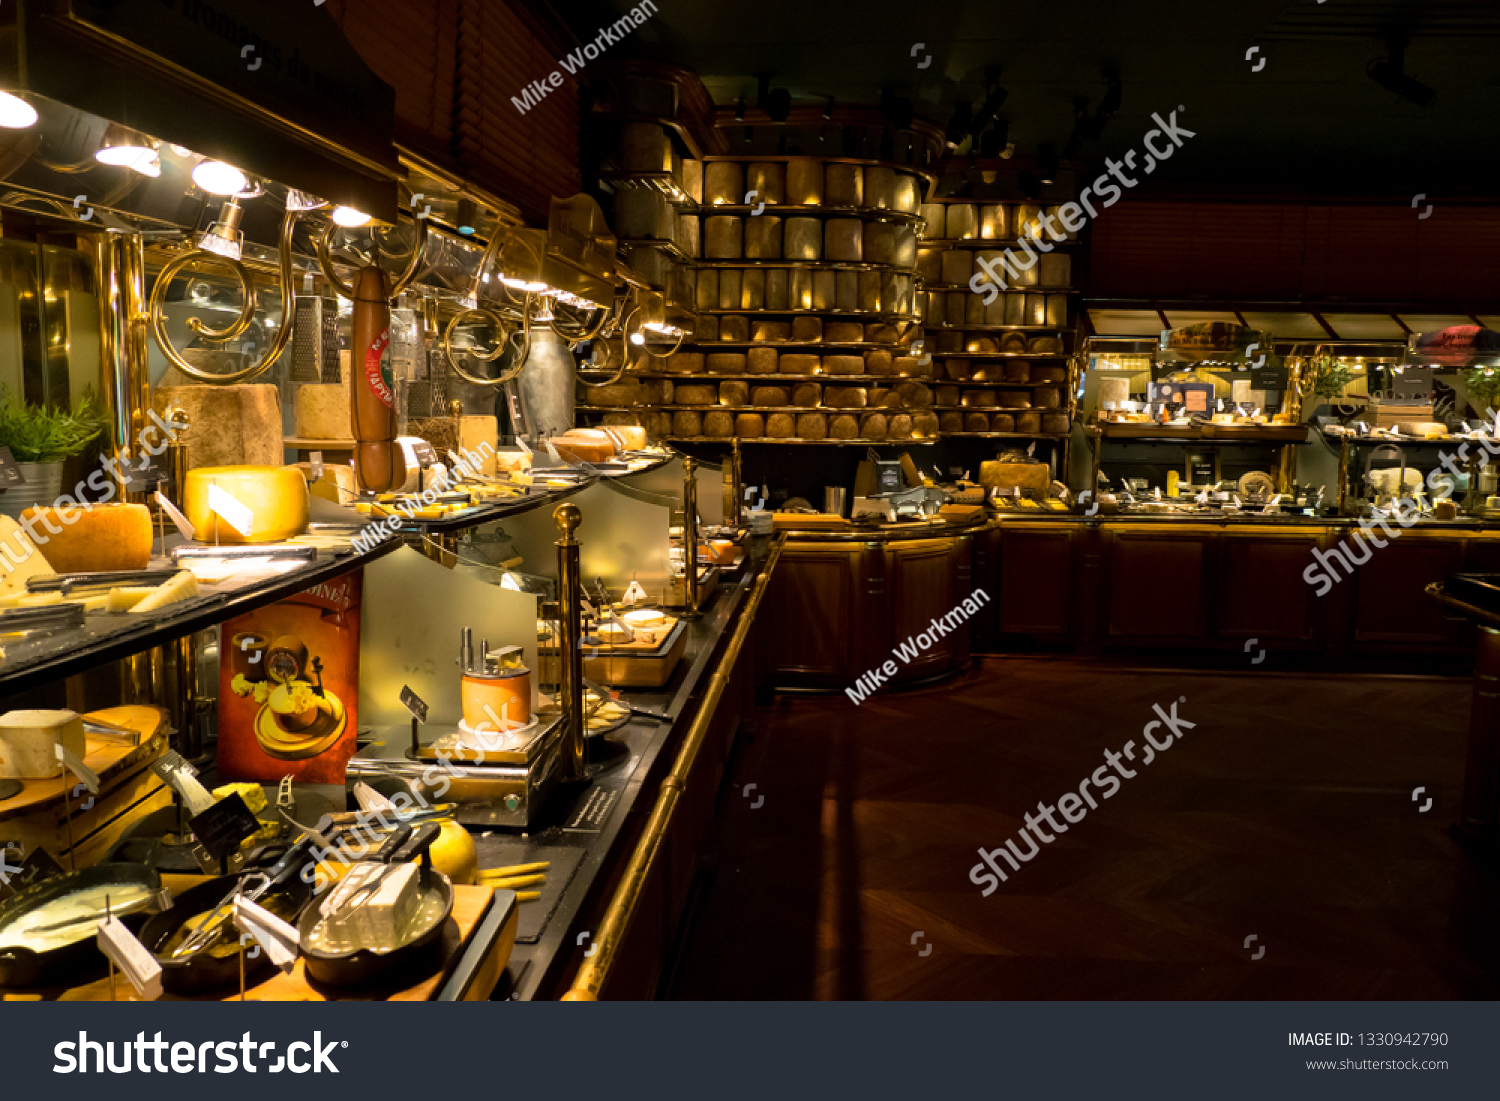 Narbonne France Worlds Largest Cheese Selection Stock Photo Edit Now 1330942790